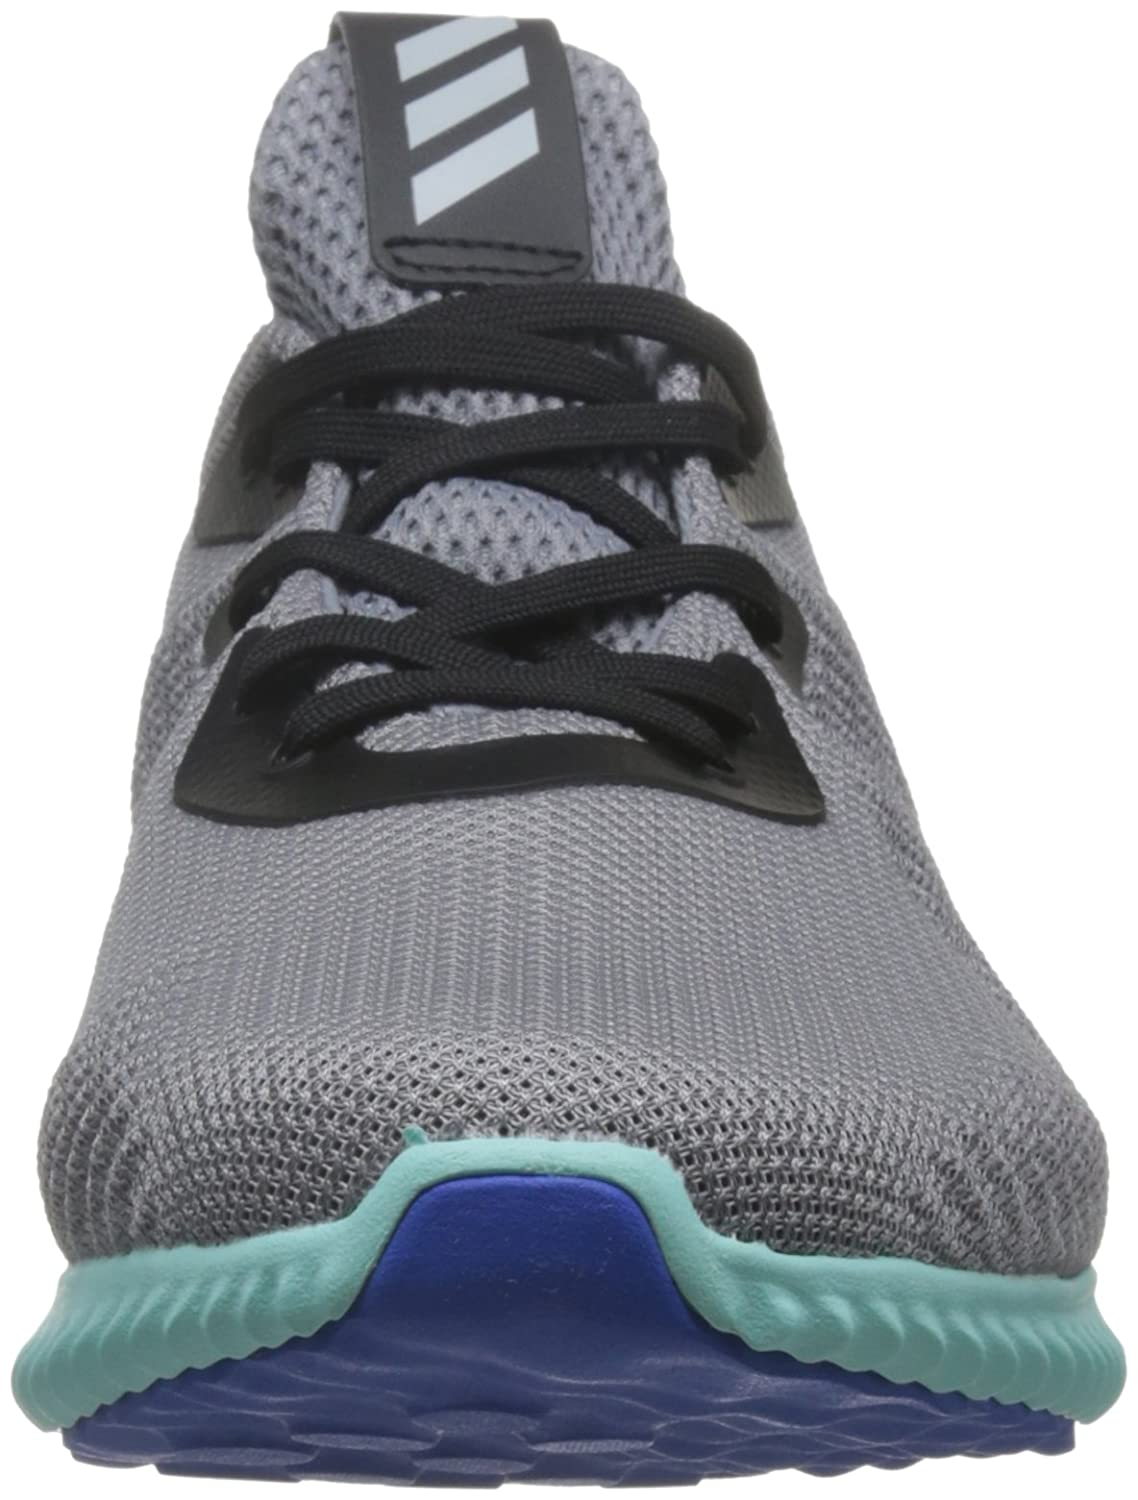 check out 3bd10 5b8be Amazon.com  adidas Alphabounce 1 M Mens Basketball Trainers Sneakers   Fashion Sneakers